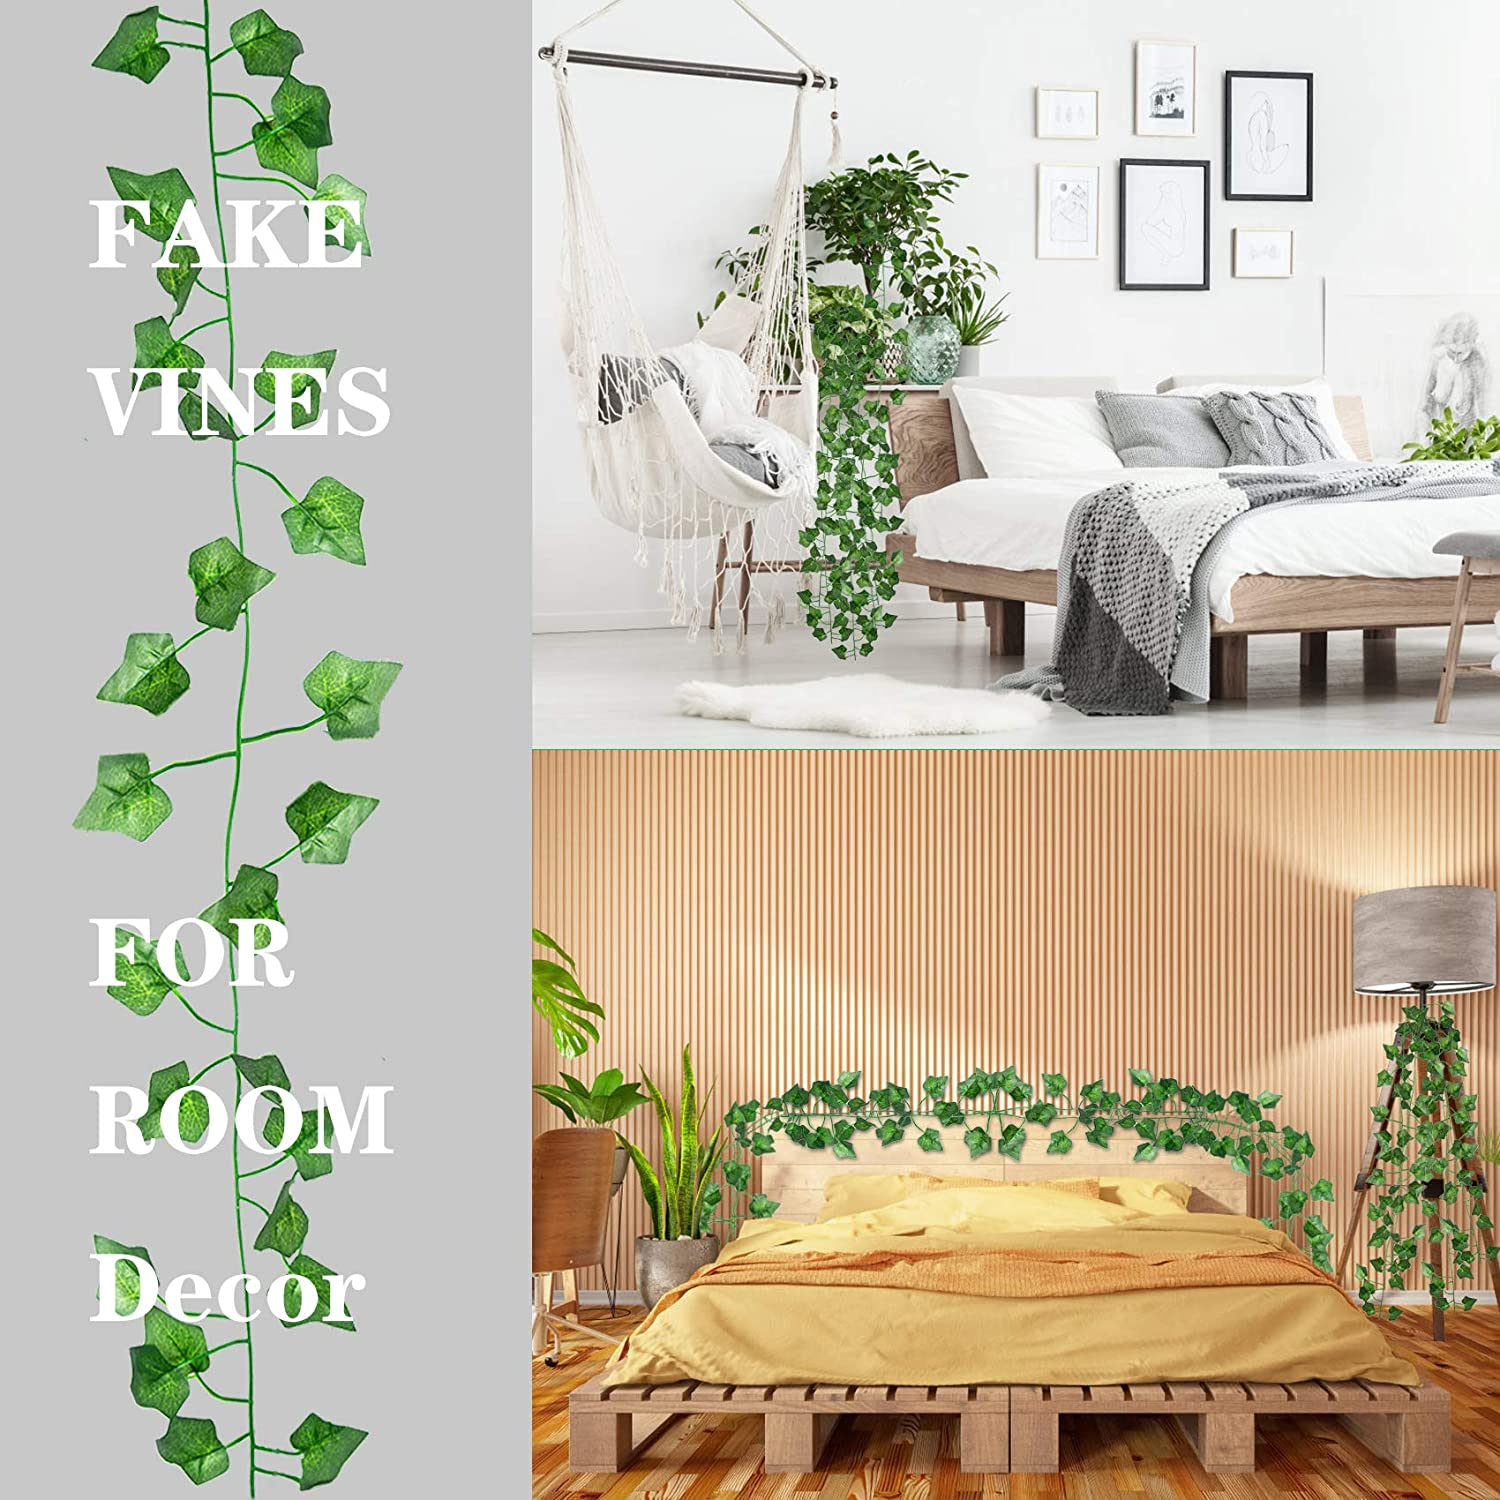 20 Pack 20 Feet Fake Vines for Bedroom Decor Aesthetic Greenery Ivy Leaves  Garland Artificial Hanging Plants for Wedding Wall Party Home Decor